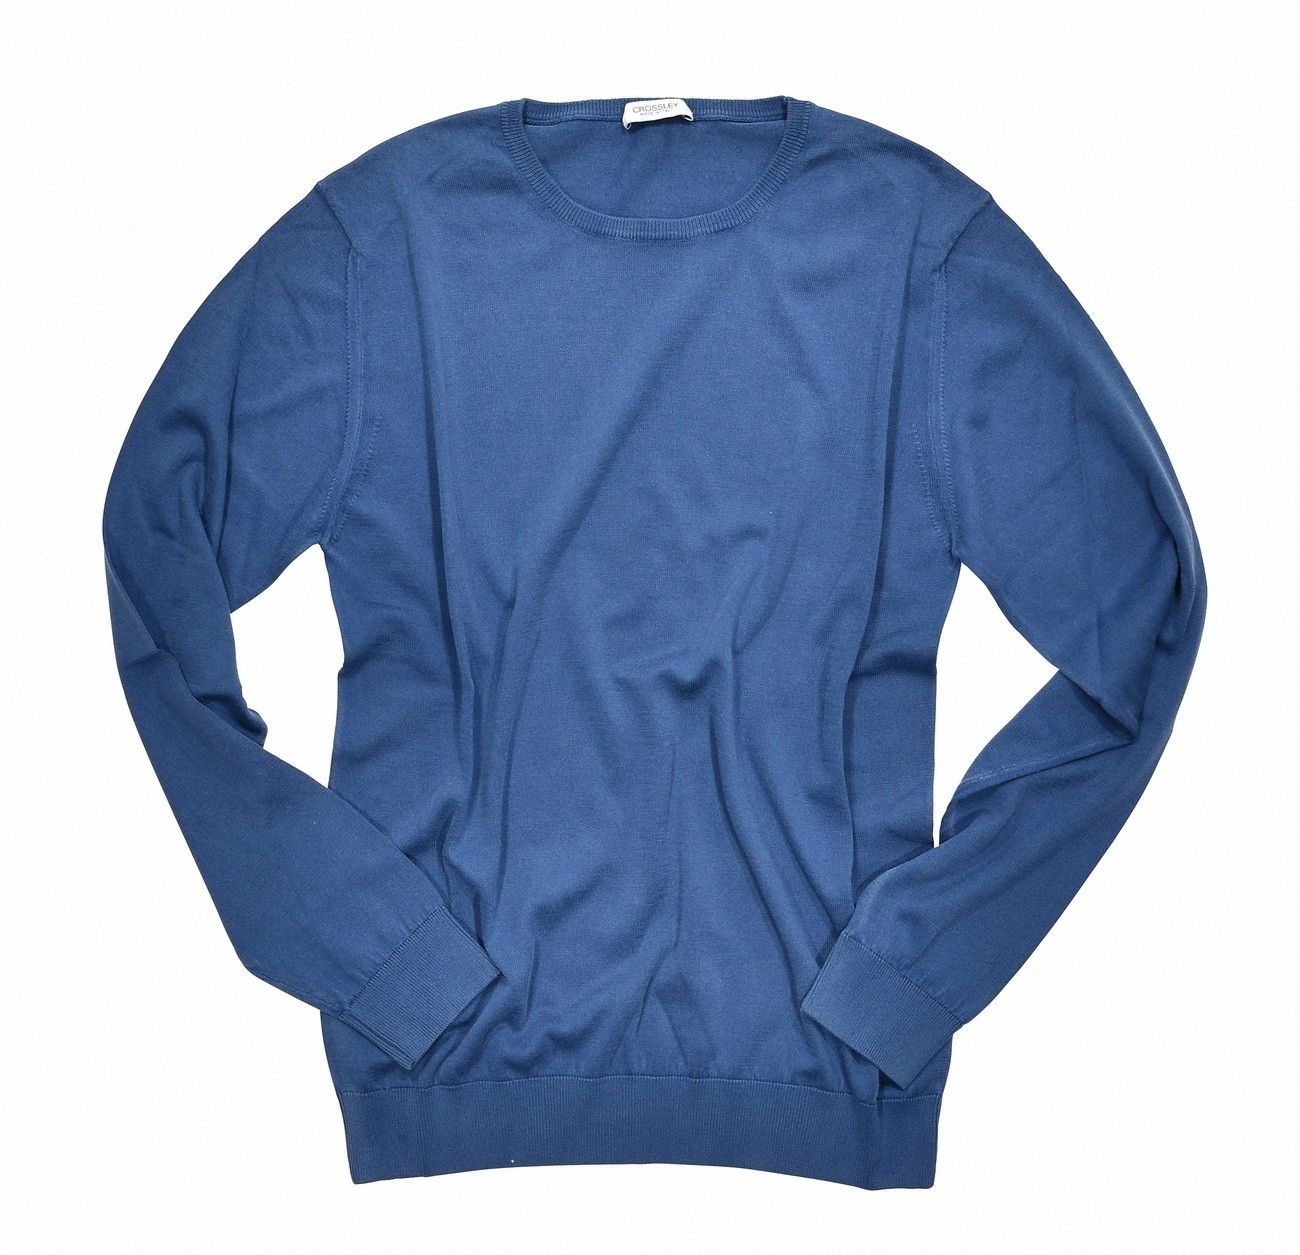 CROSSLEY - Herren Feinstrick - Organic Crew Neck - Dyed Blue